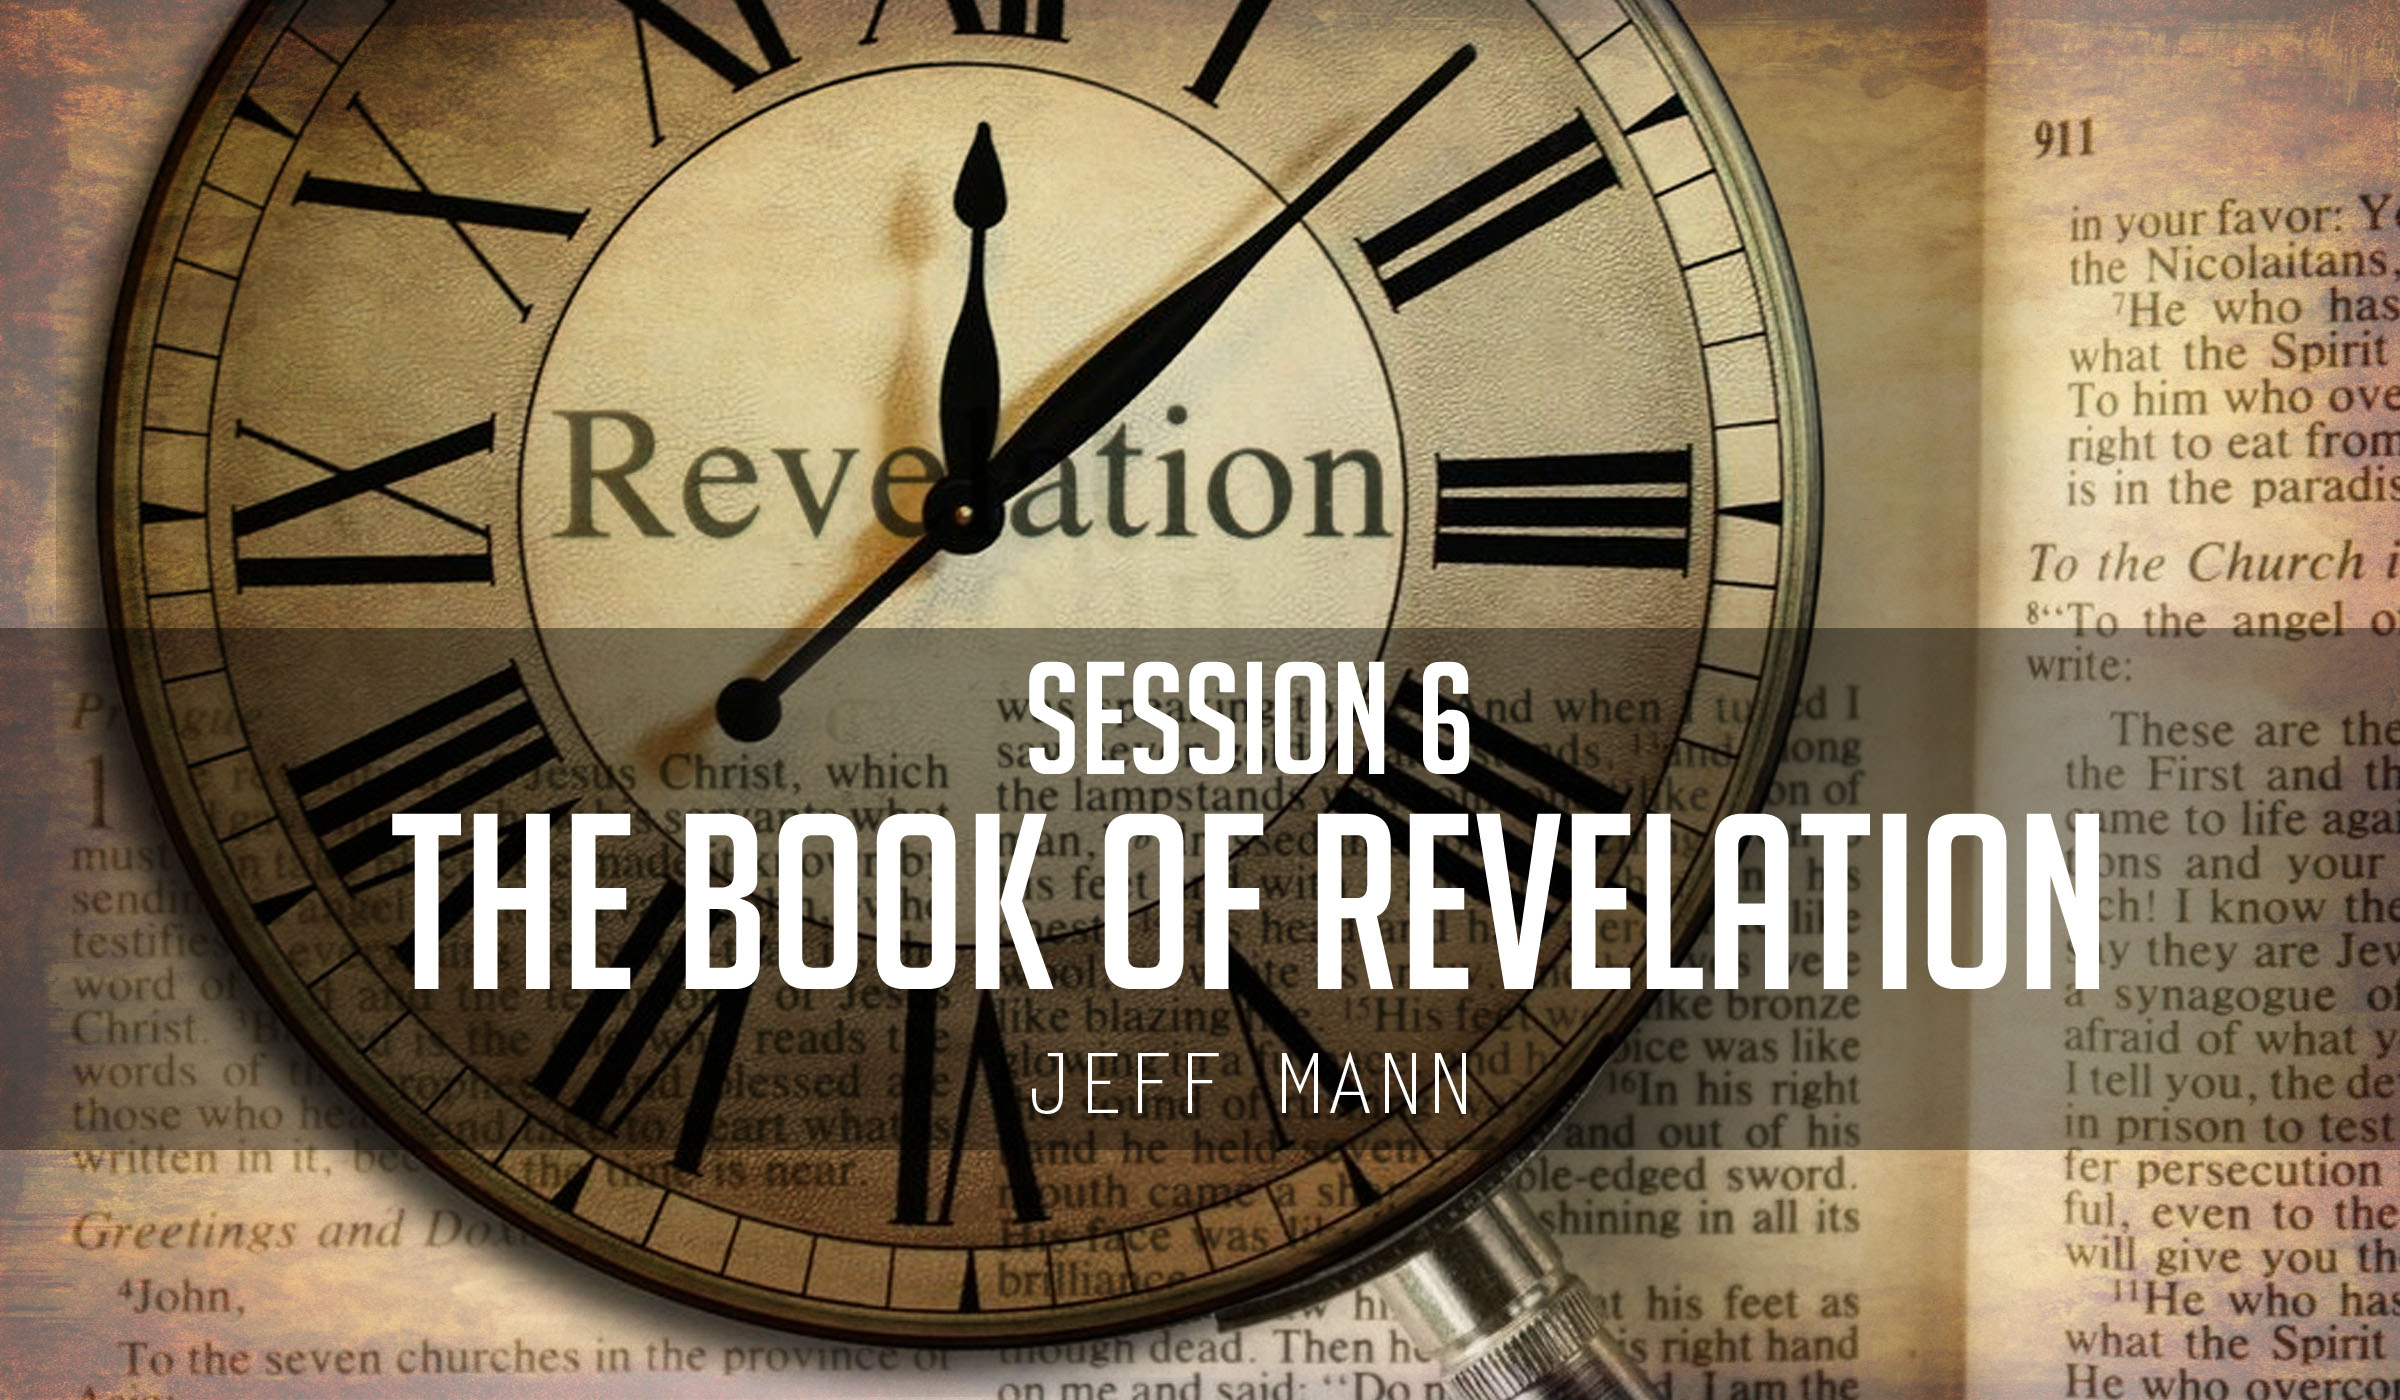 The Book of Revelation Session 6